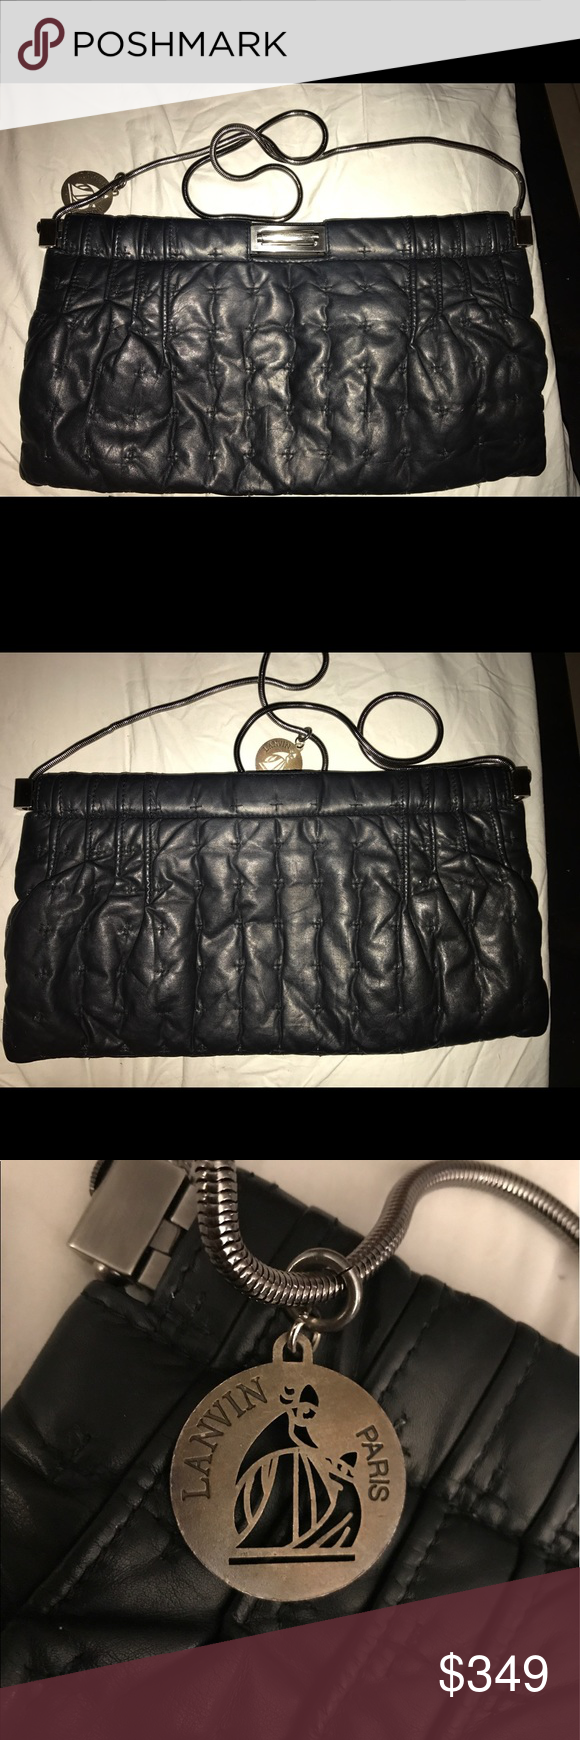 "Gorgeous black leather Lanvin clutch crossbody Huge and really unique with cross stitch and quilting details in buttery soft leather . The strap is detachable. Measures 15 x 7 1/2"" Lanvin Bags Clutches & Wristlets"